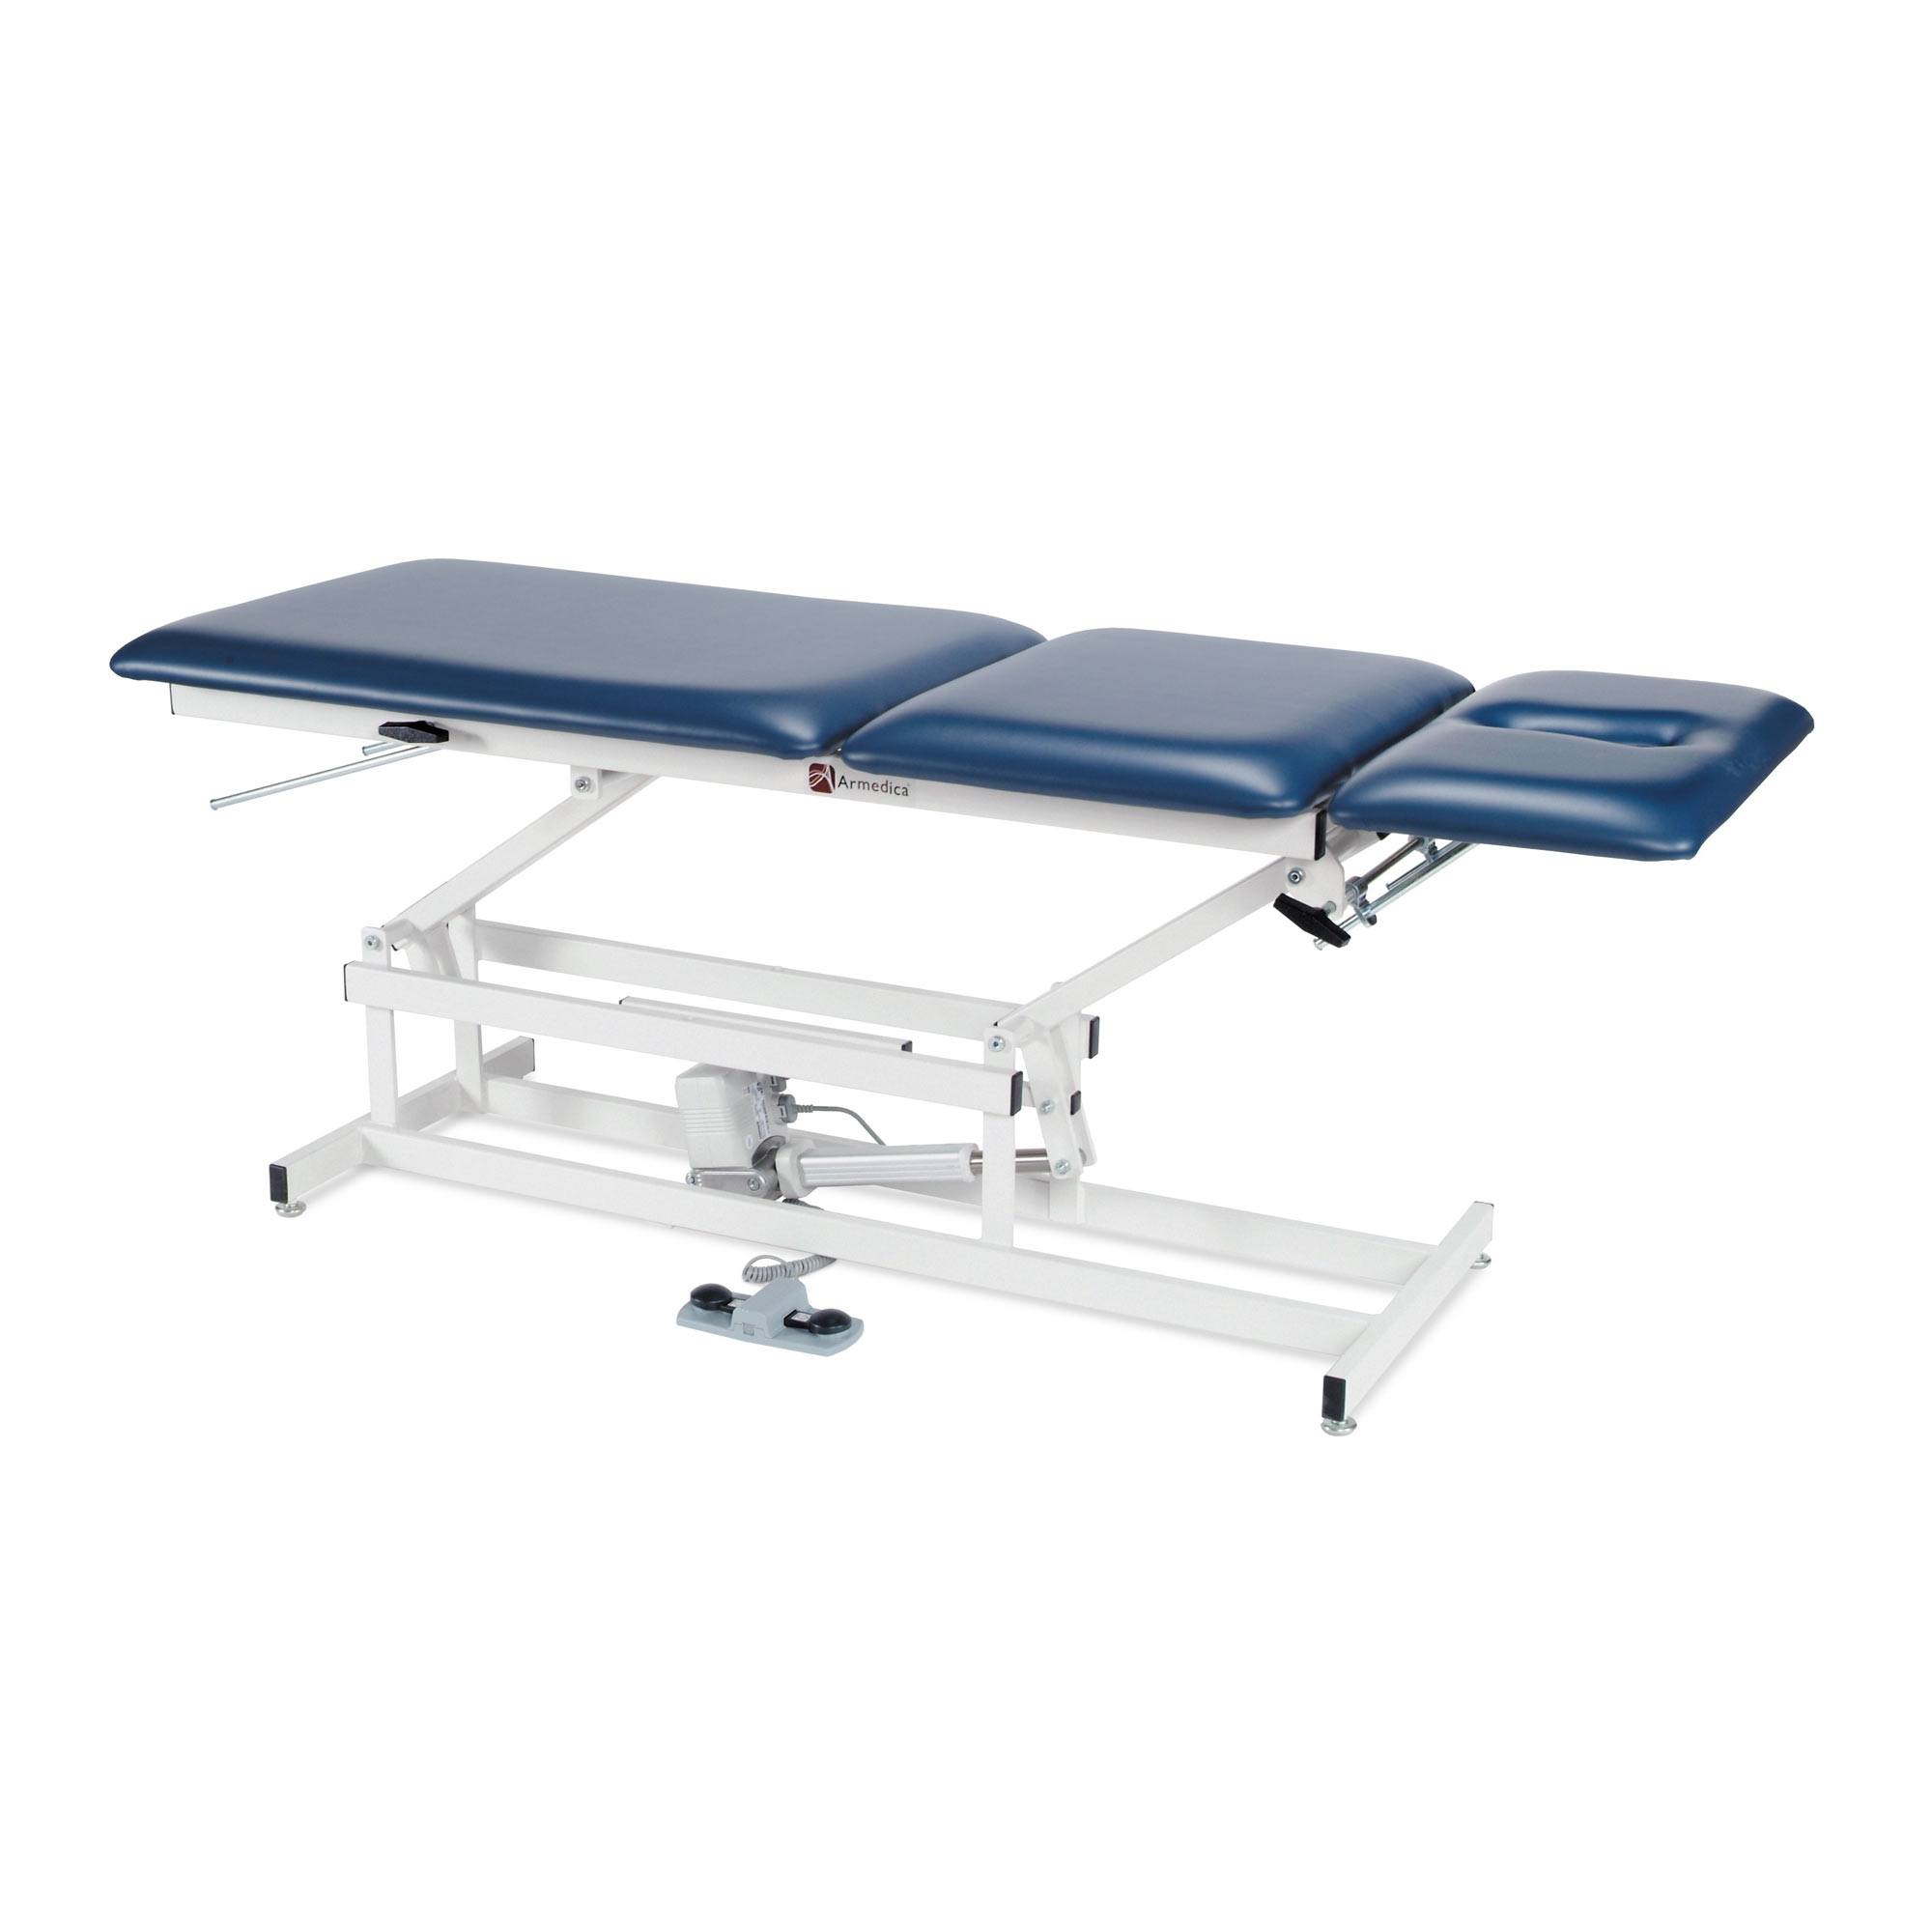 Armedica AM-300 treatment table